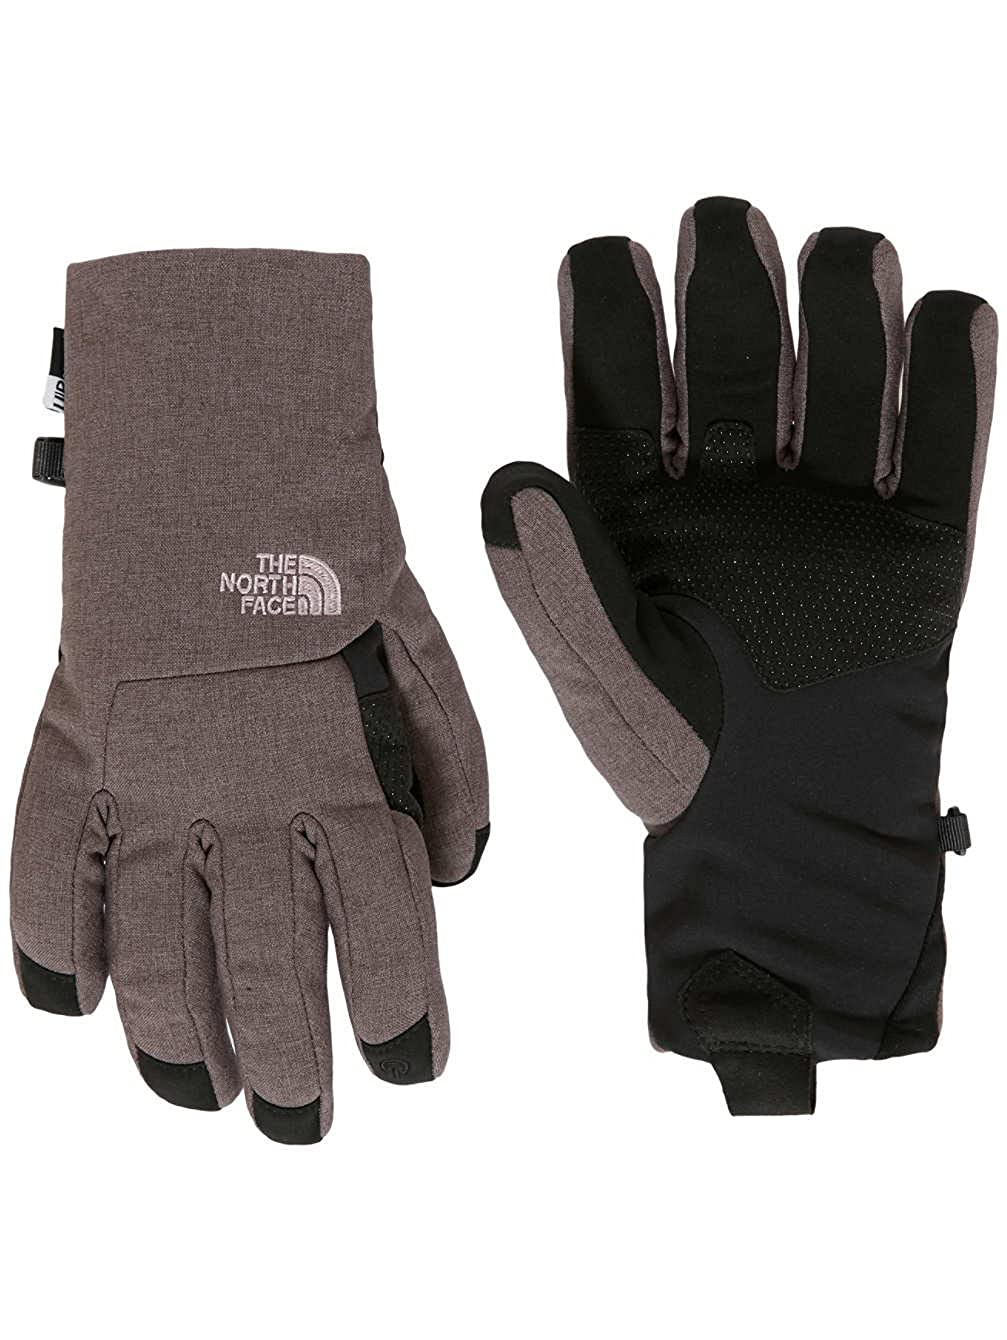 The North Face mens Etip Glove The North Face Accessories